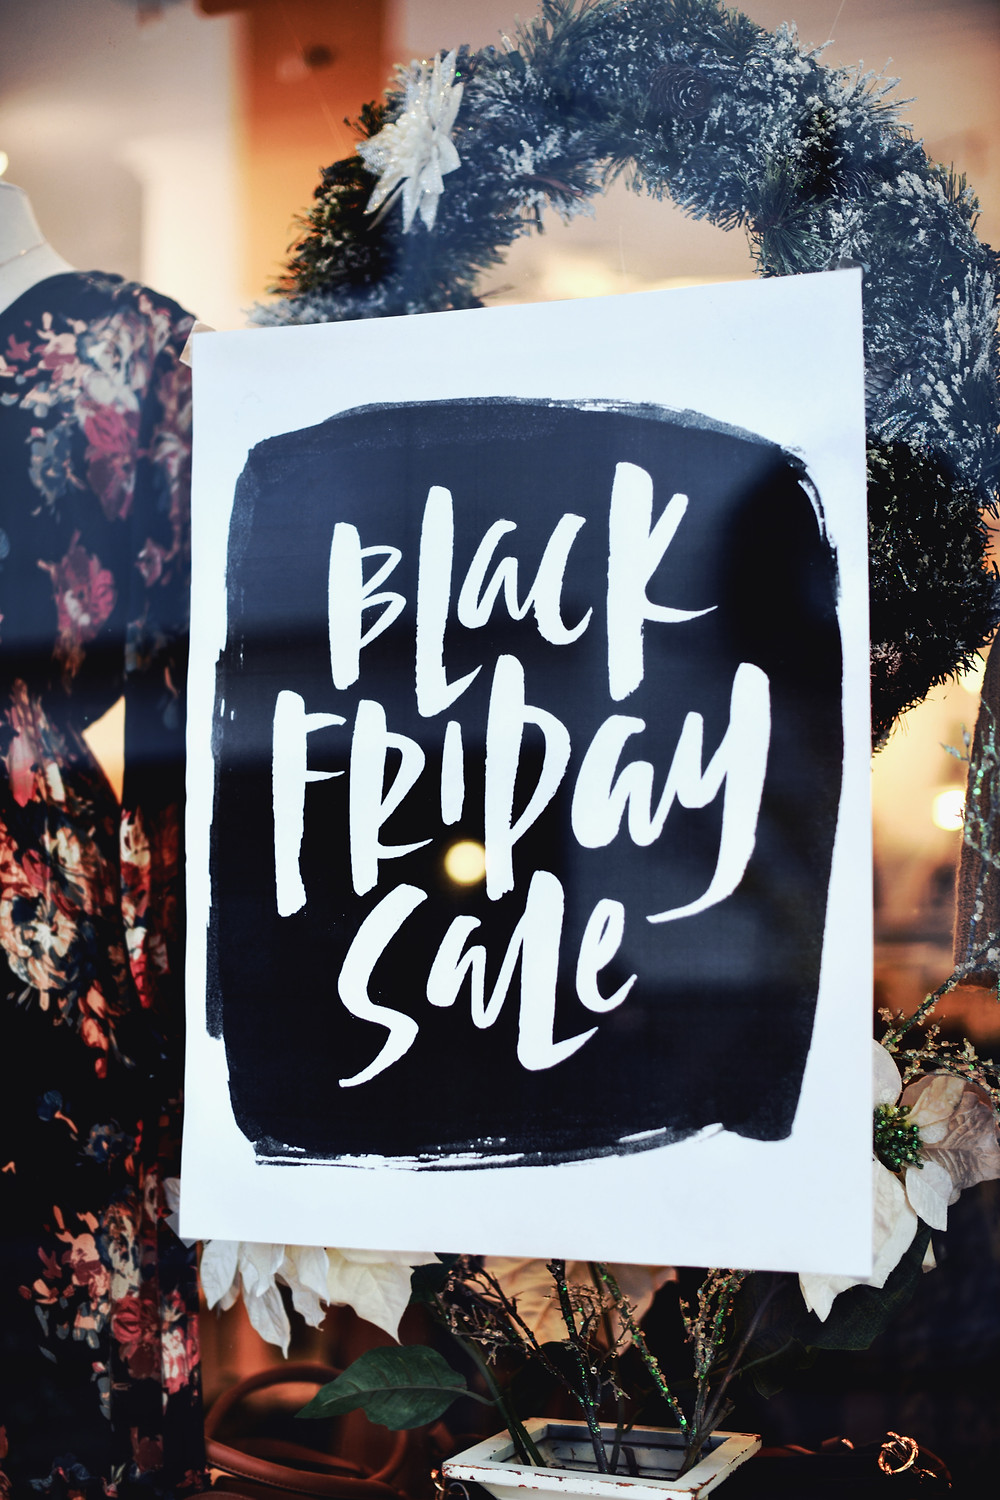 Black Friday 2020 Offers . Blog post about the Black Friday 2020 that it is going to be one of the weirdest Black Friday of the recent history due to the situation with the Corona Virus . As usual in our website you will find many useful information, software, book and reports and of course lot of Offers !